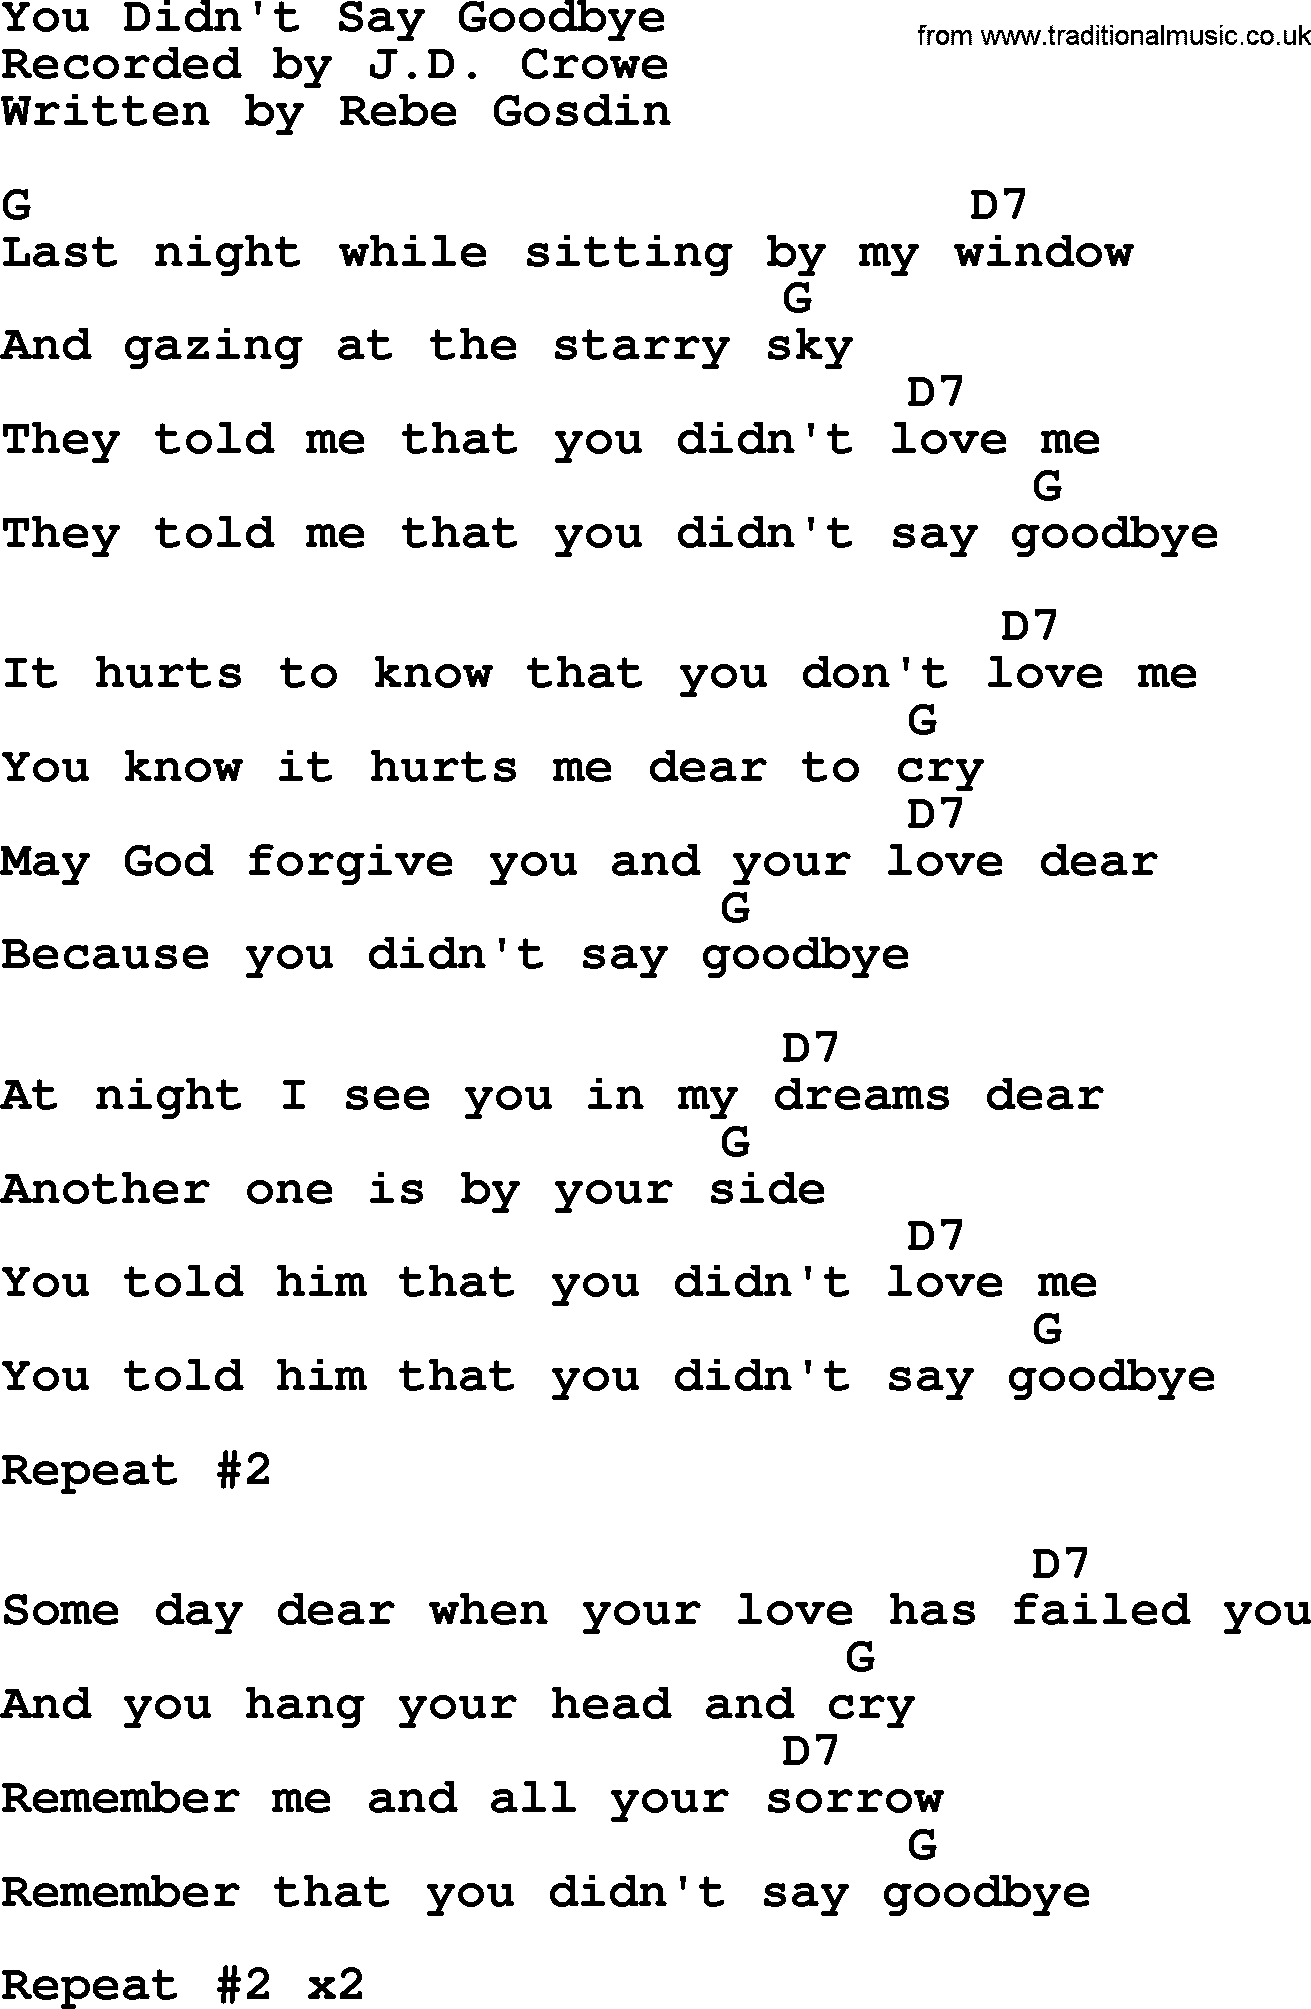 You didnt say goodbye bluegrass lyrics with chords bluegrass song you didnt say goodbye lyrics and chords hexwebz Image collections